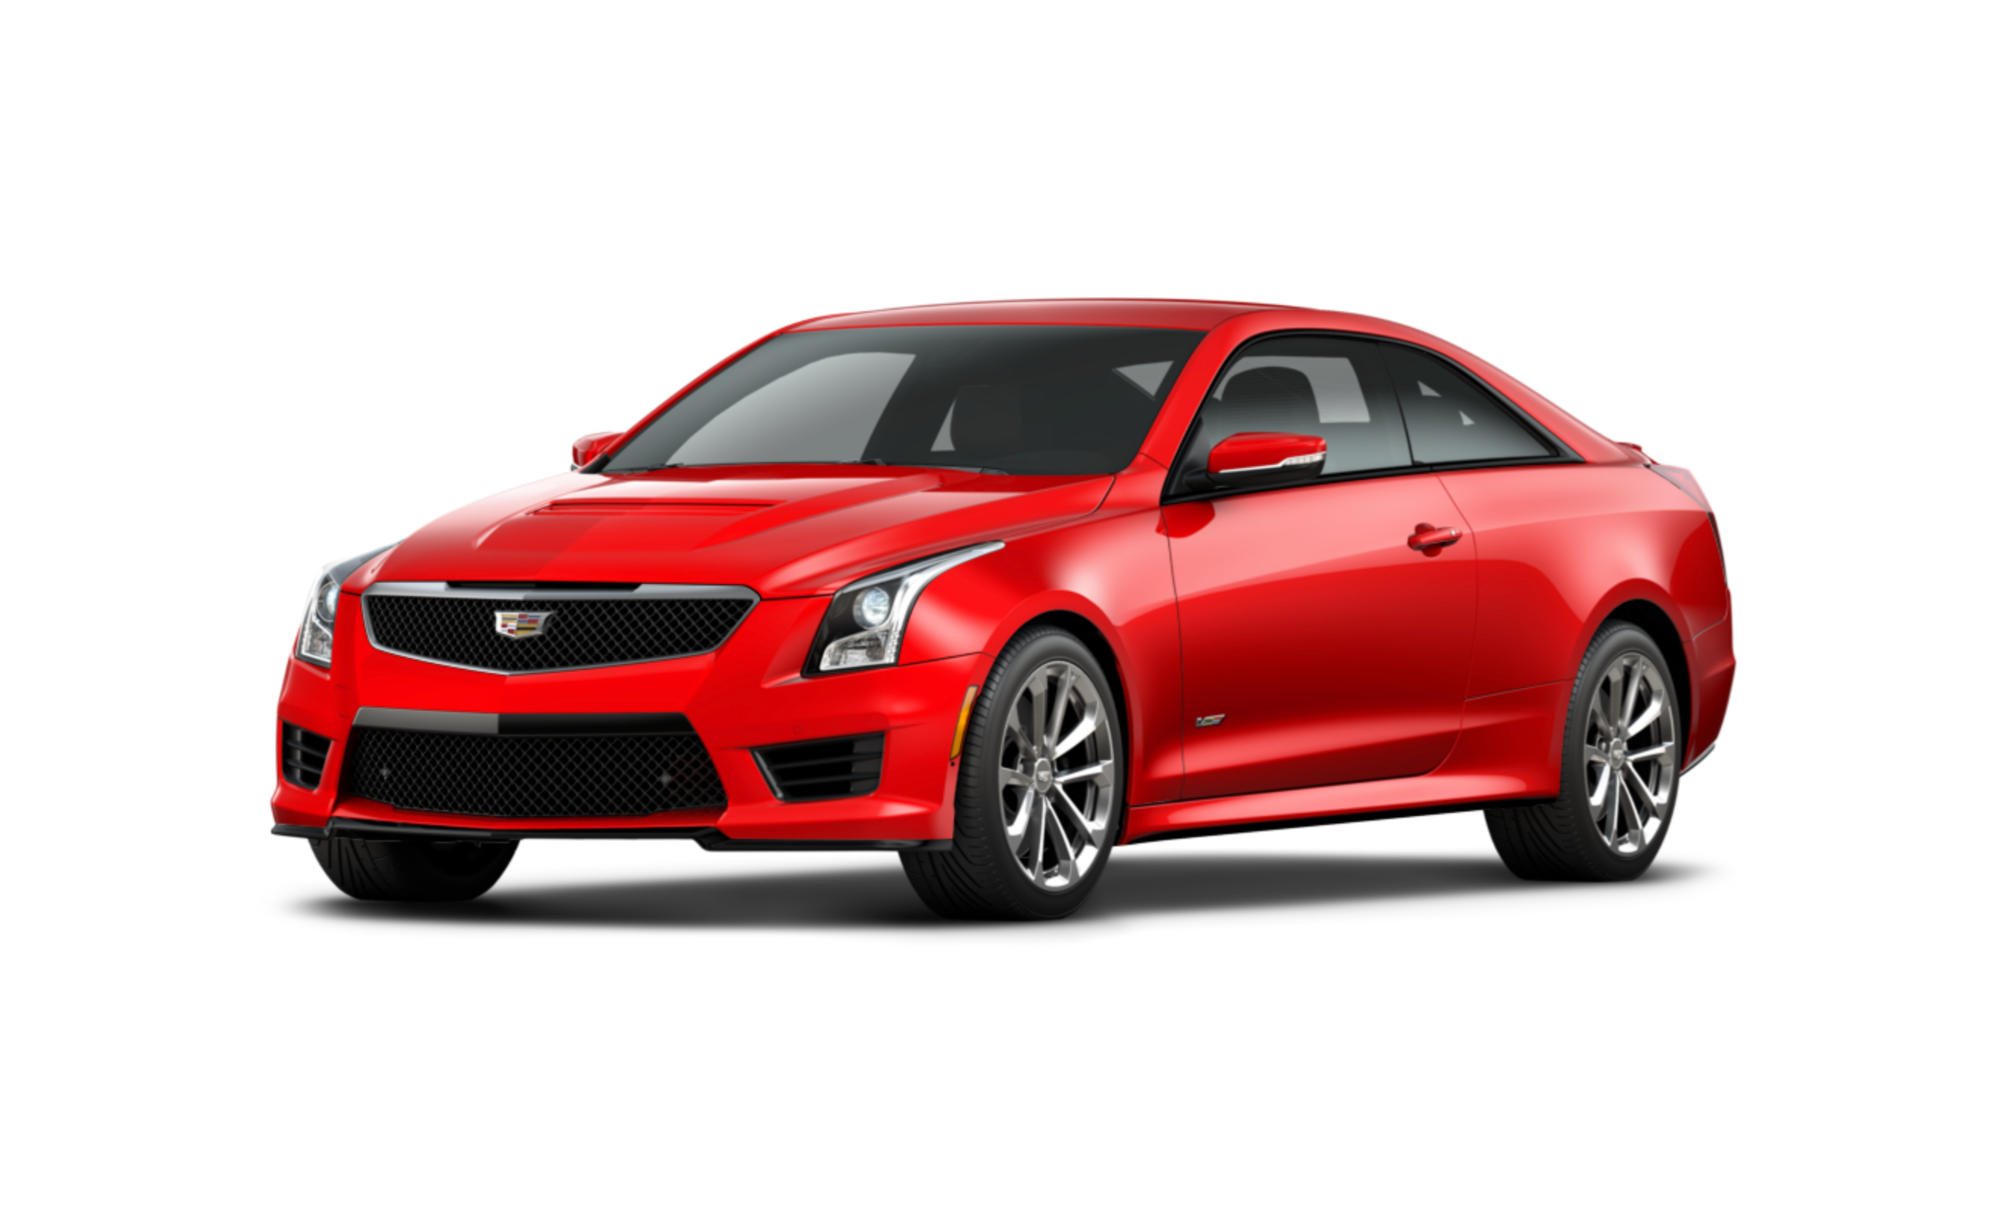 2019 Cadillac ATS-V Coupe Full Specs, Features and Price ...